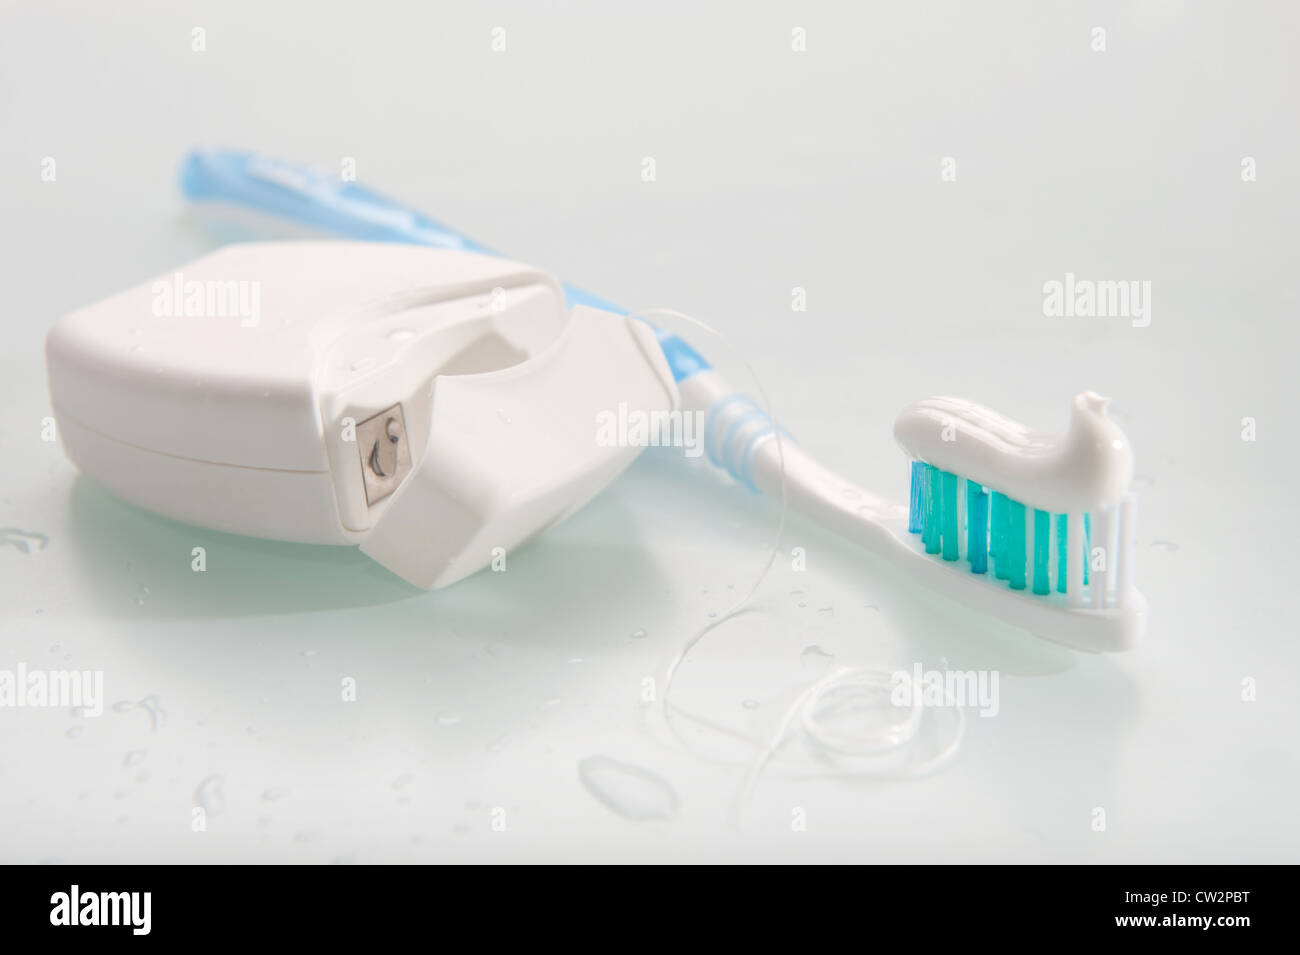 Toothbrush with toothpaste and dental floss on light background - Stock Image